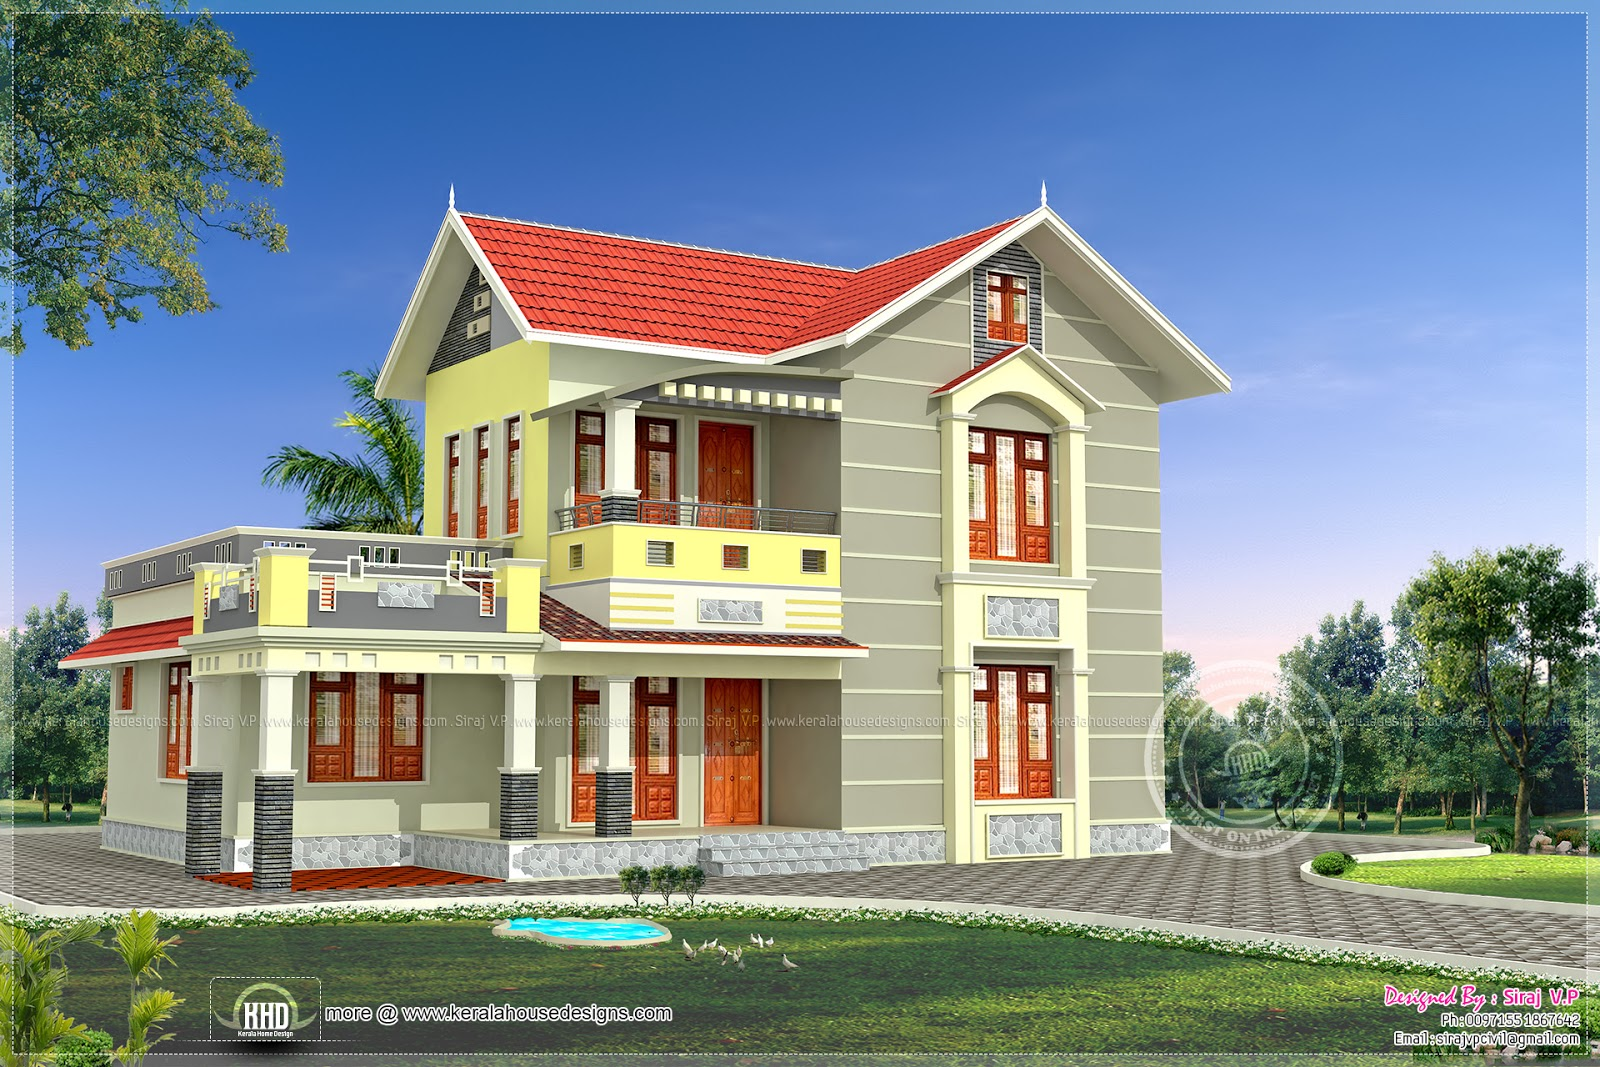 3 story victorian house floor plans wood floors for 3 story victorian house